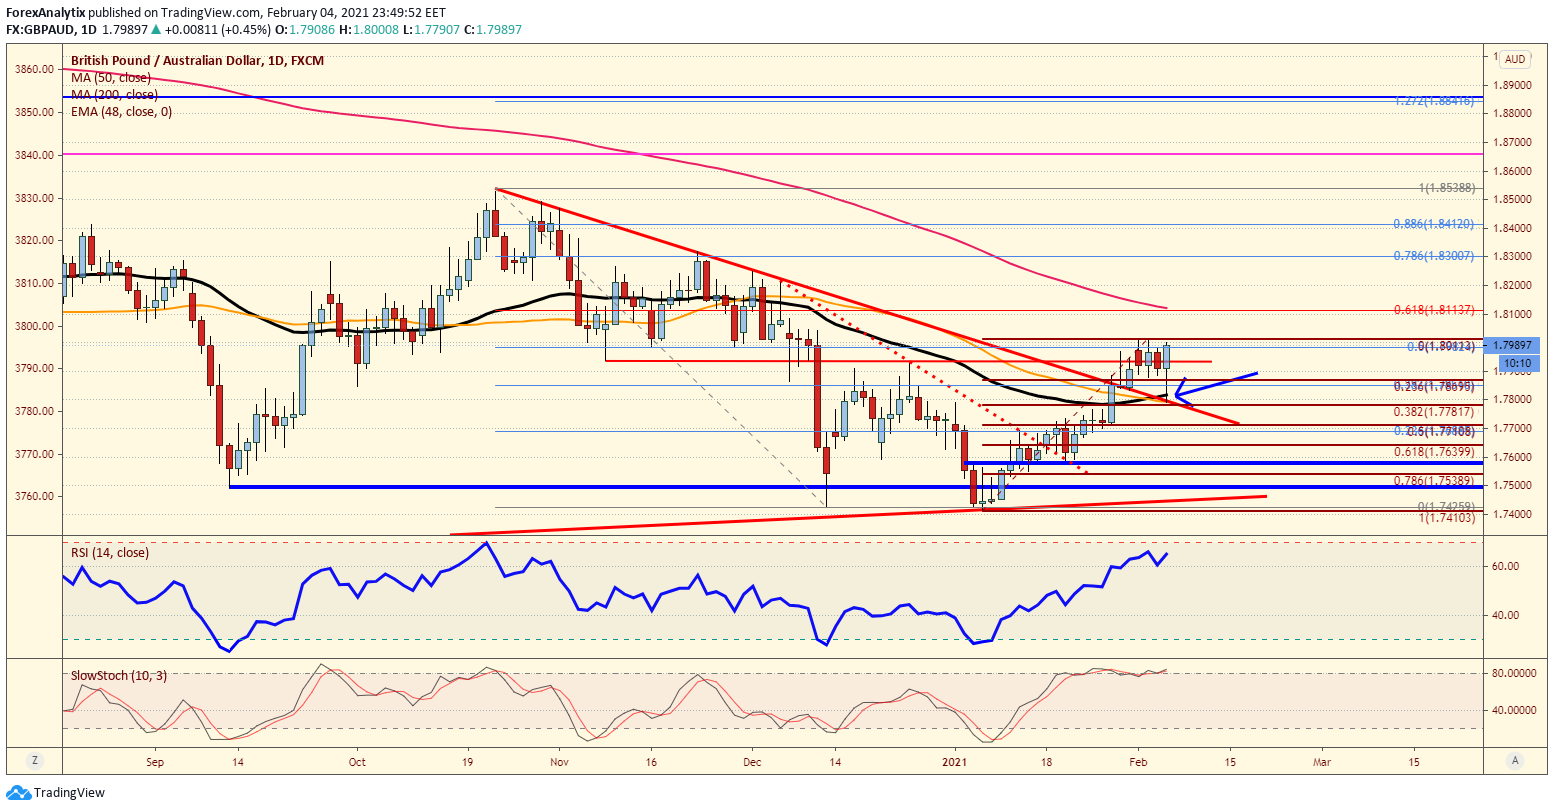 GBP/AUD Daily Chart.